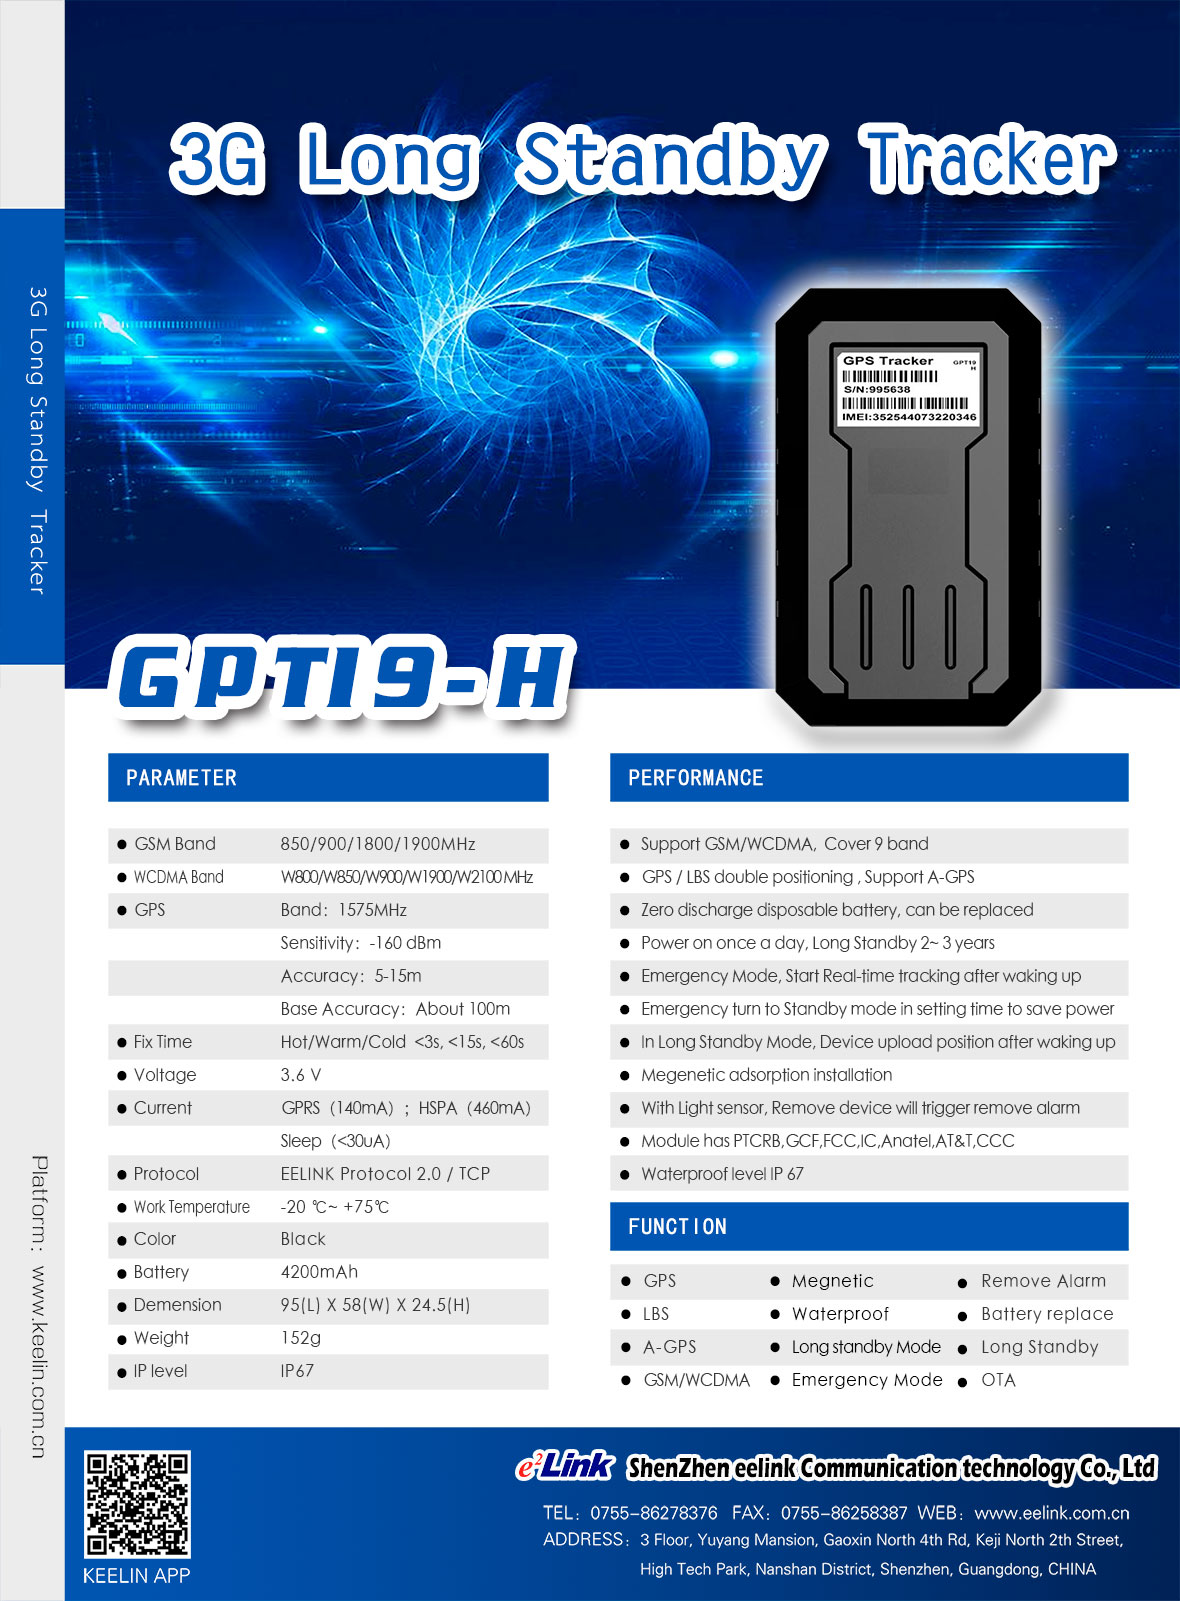 GPT19-H GPS Tracker Documents